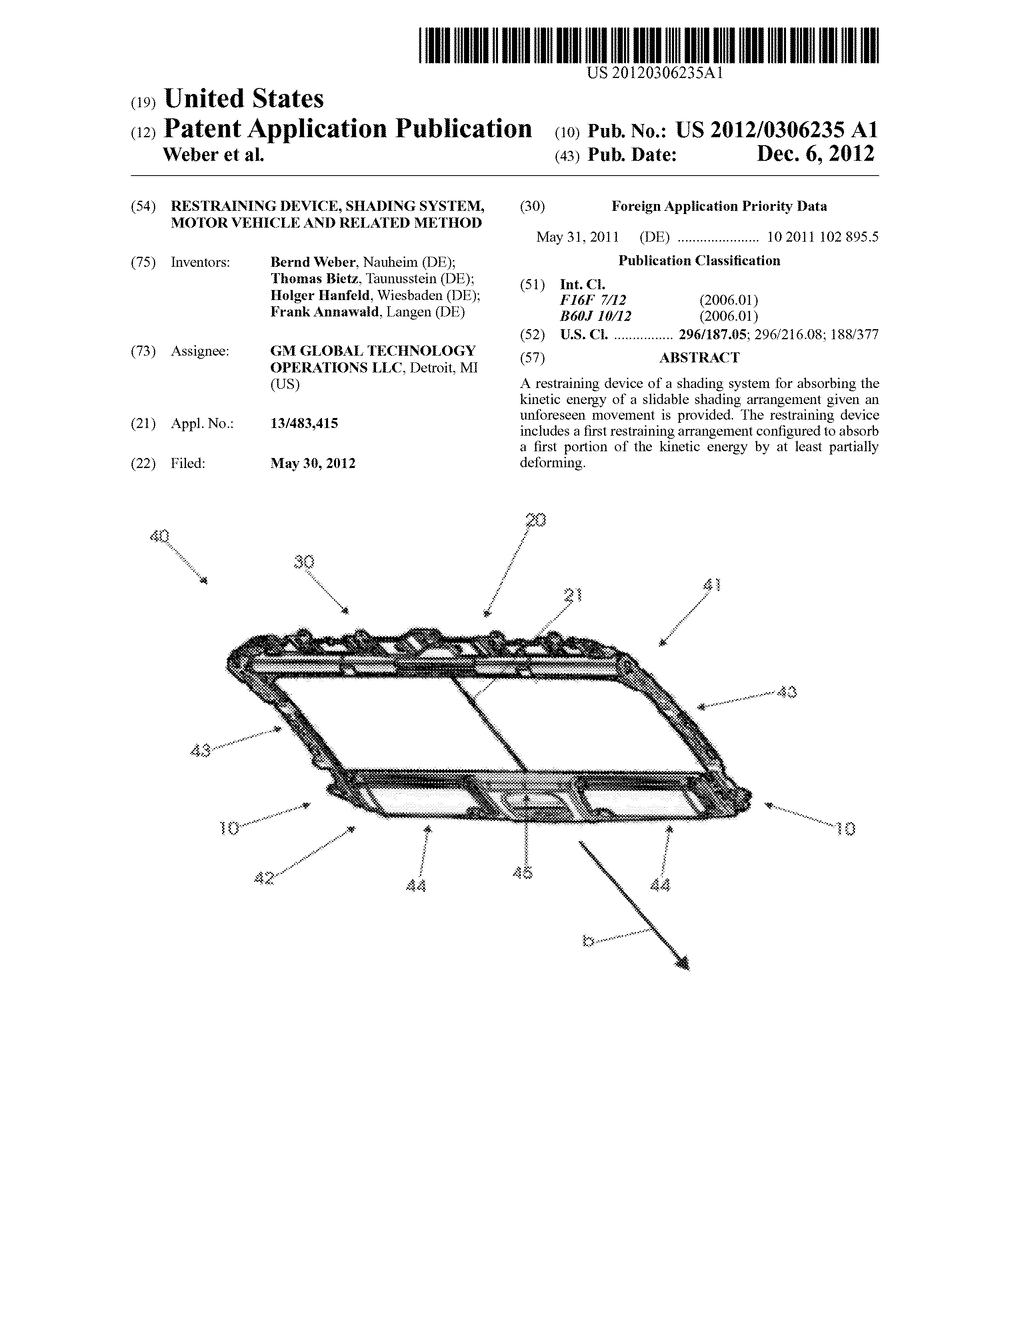 RESTRAINING DEVICE, SHADING SYSTEM, MOTOR VEHICLE AND RELATED METHOD - diagram, schematic, and image 01